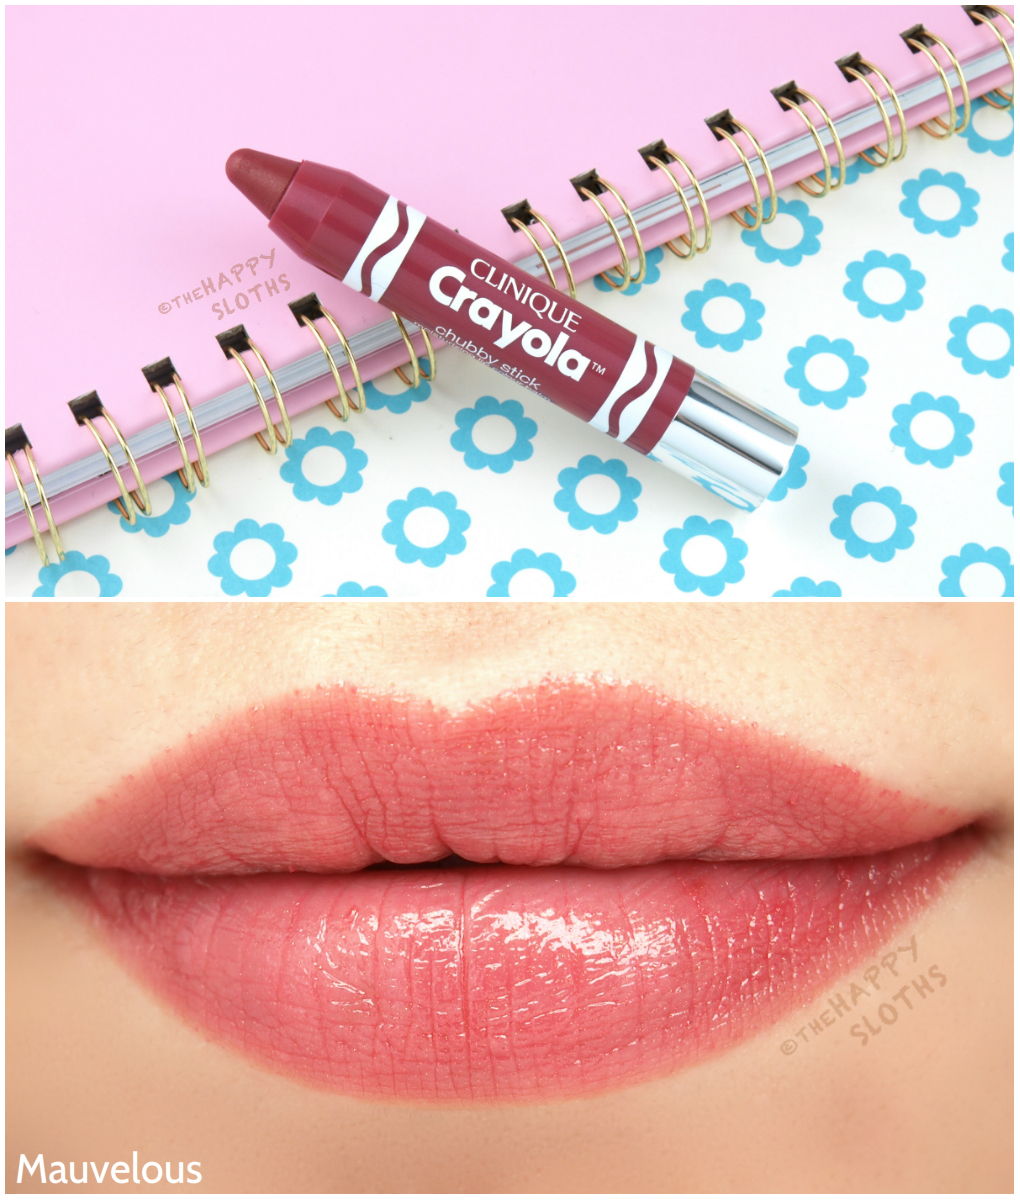 Clinique Crayola Chubby Stick Mauvelous: Review and Swatches